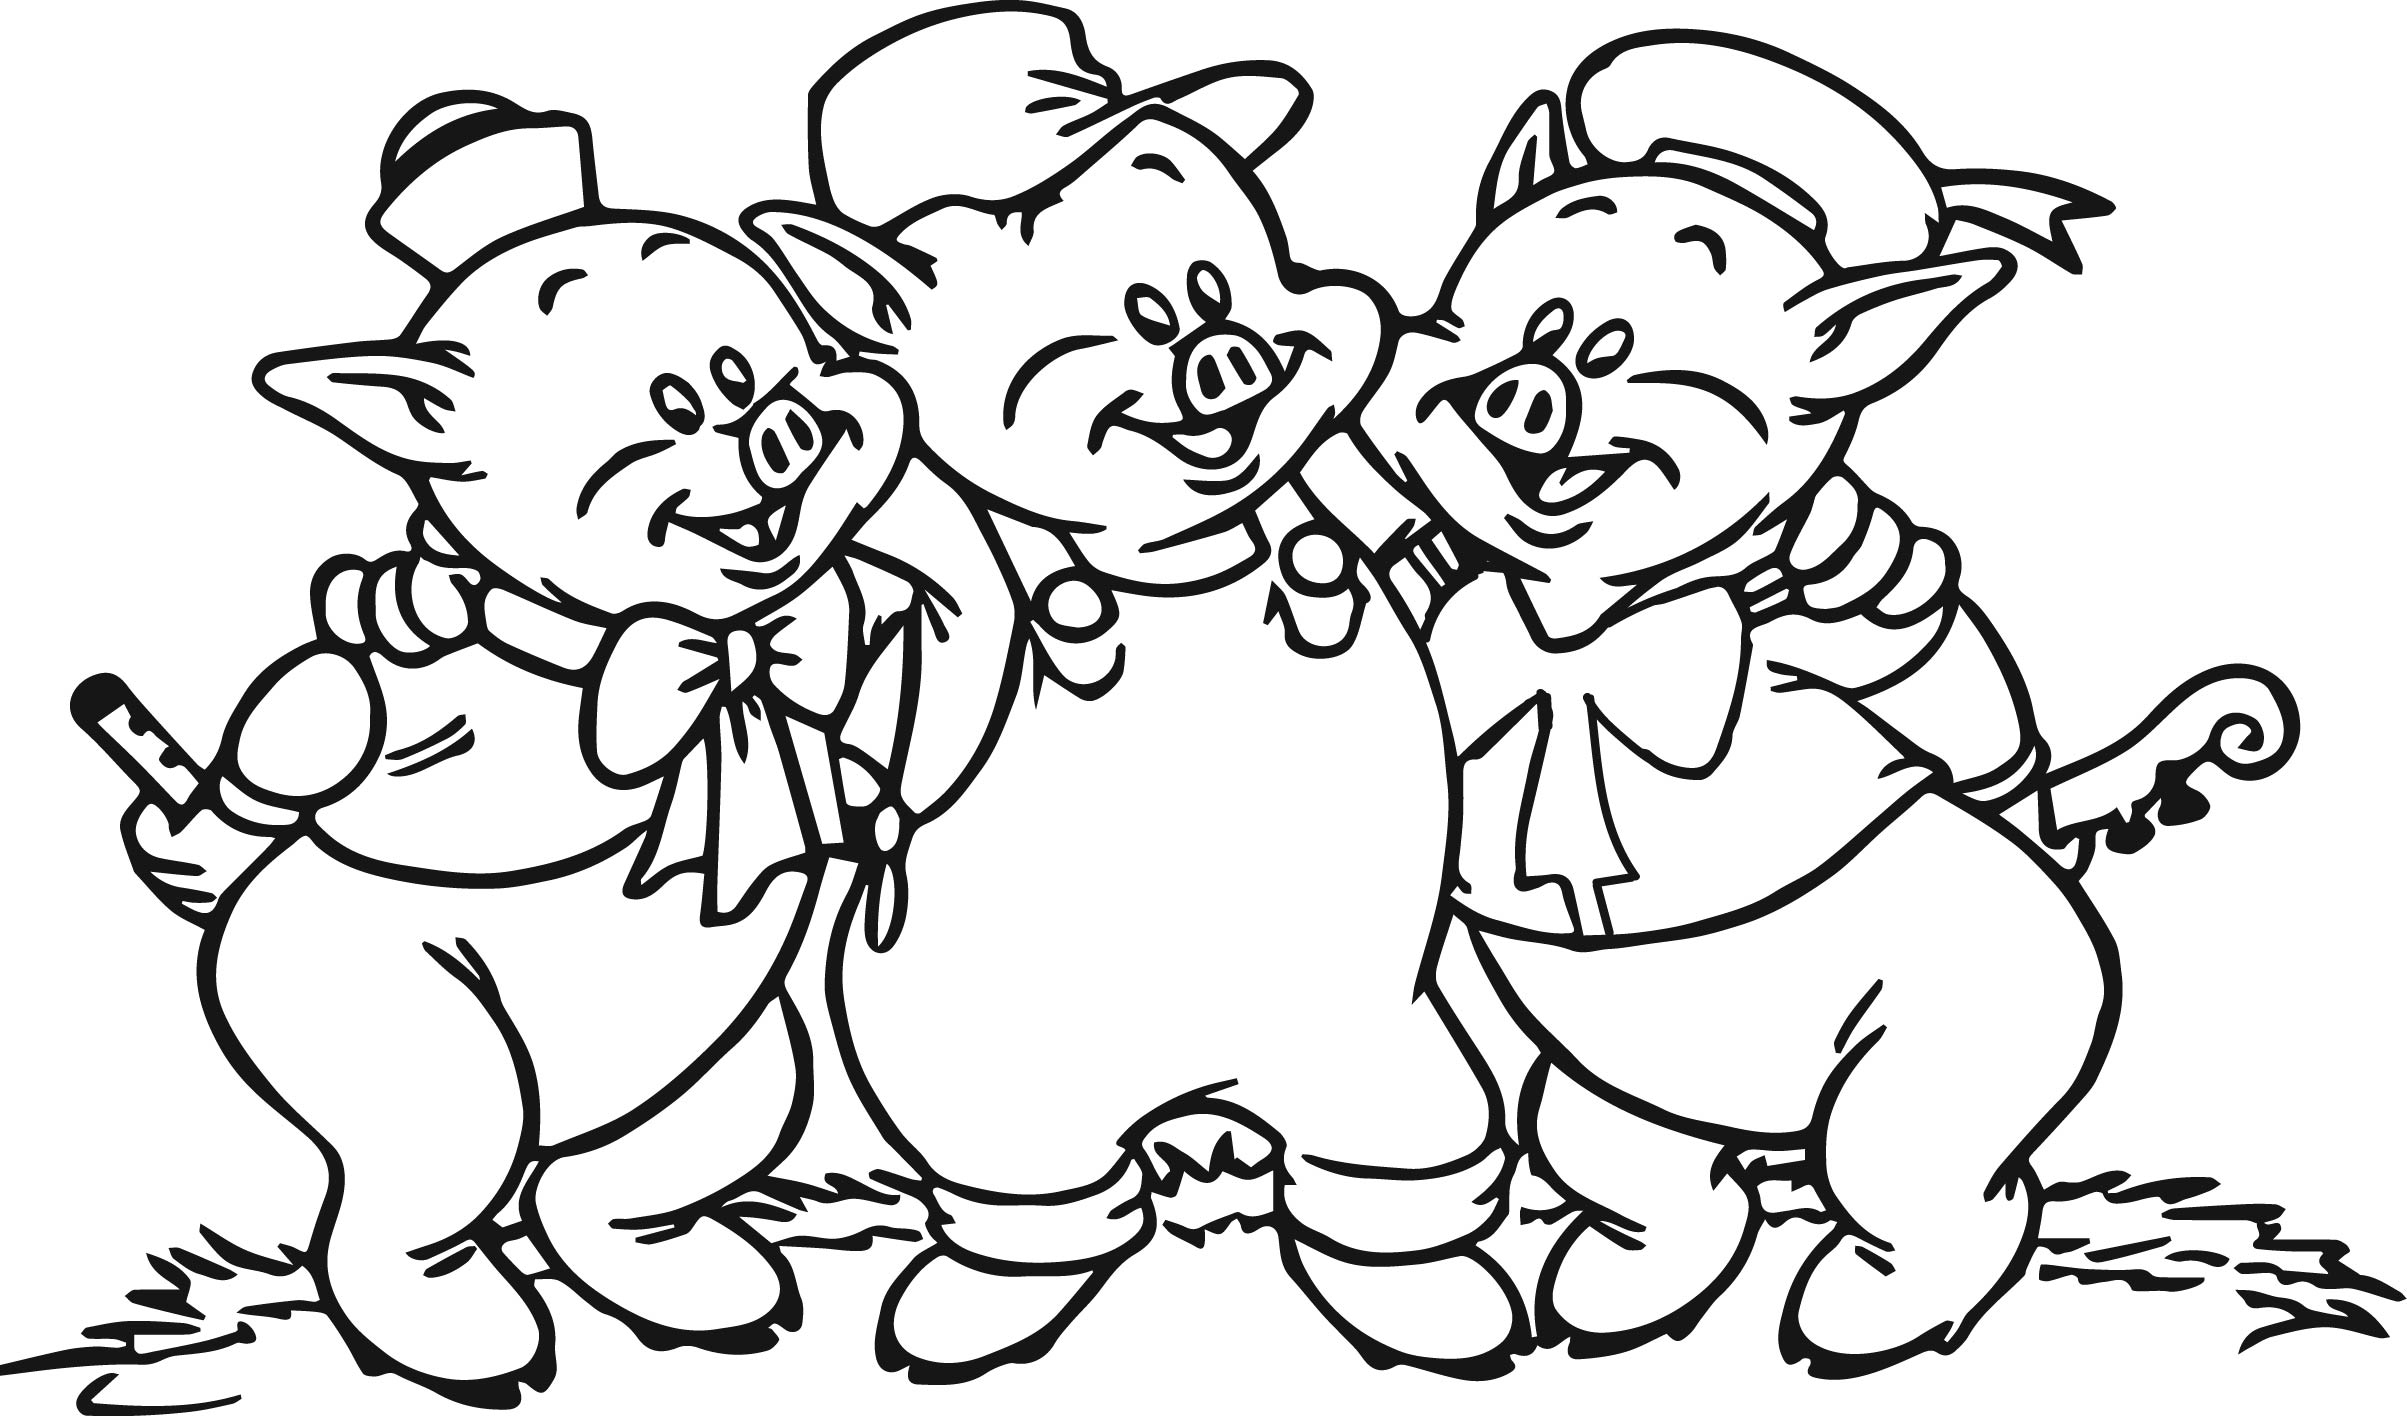 3 Little Pigs Coloring Page | Wecoloringpage